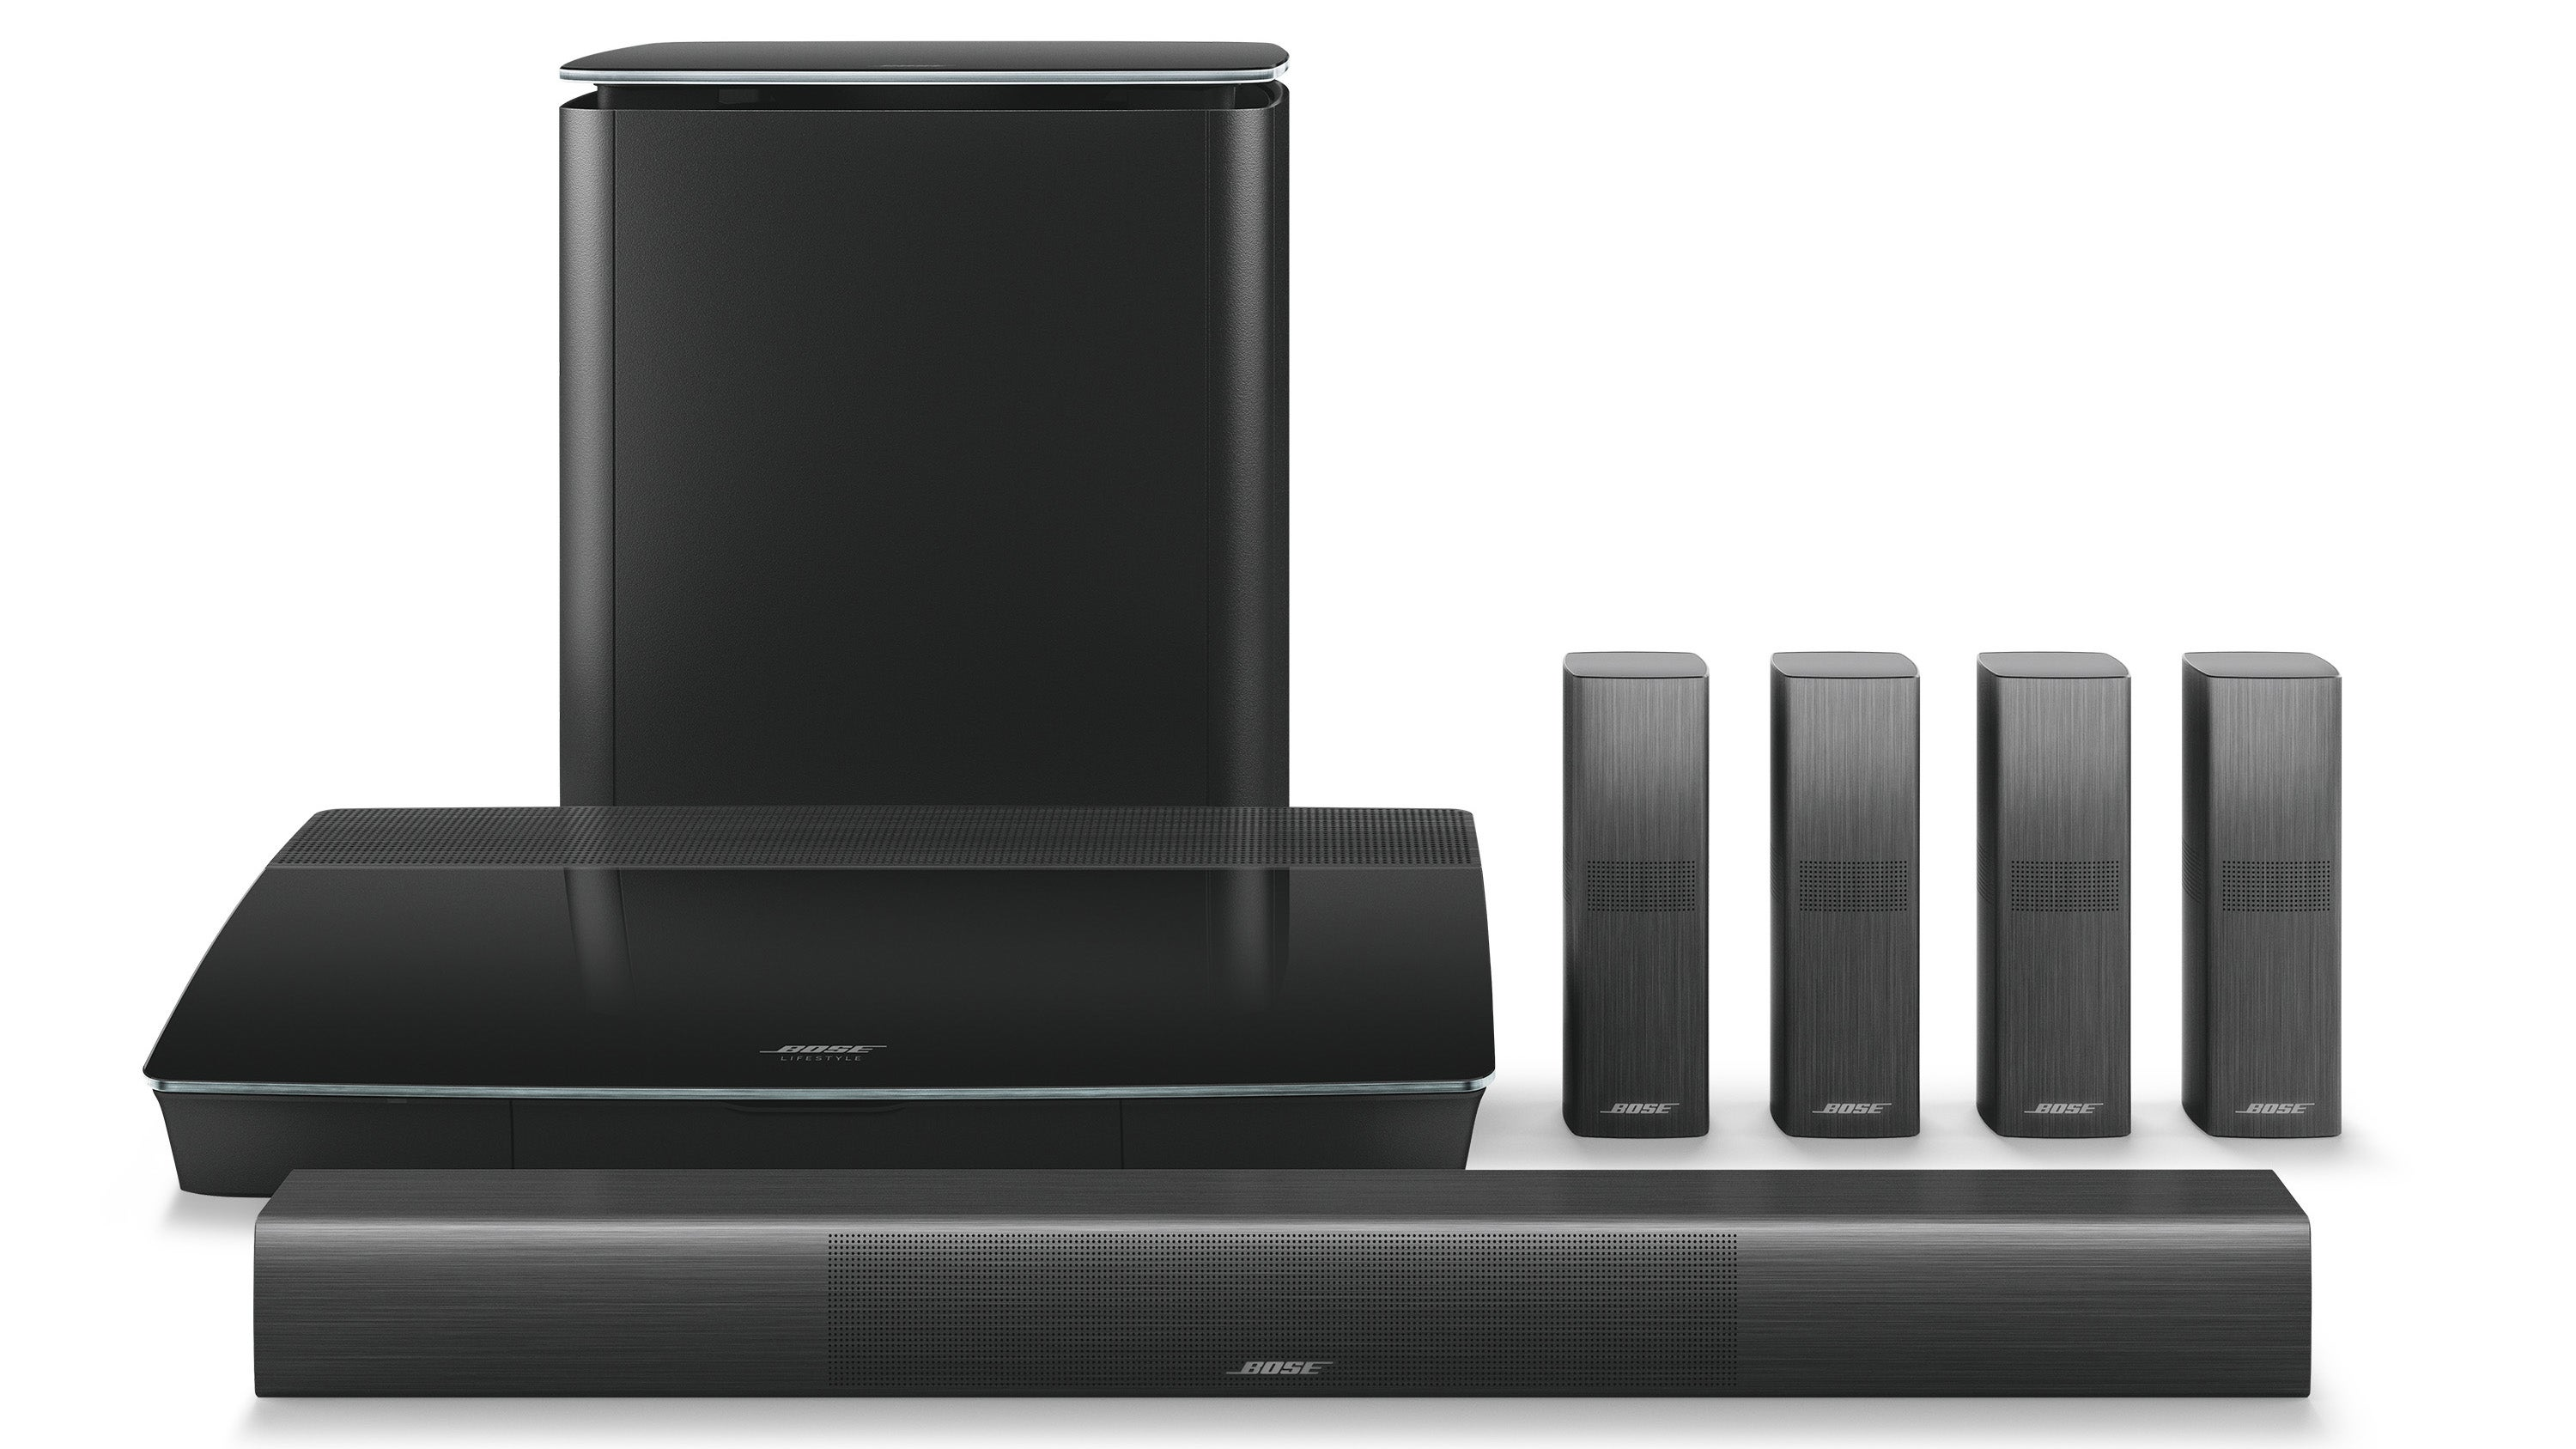 bose home theater system. bose\u0027s new home cinema gear looks dapper \u2013 but it\u0027ll cost you | trusted reviews bose theater system